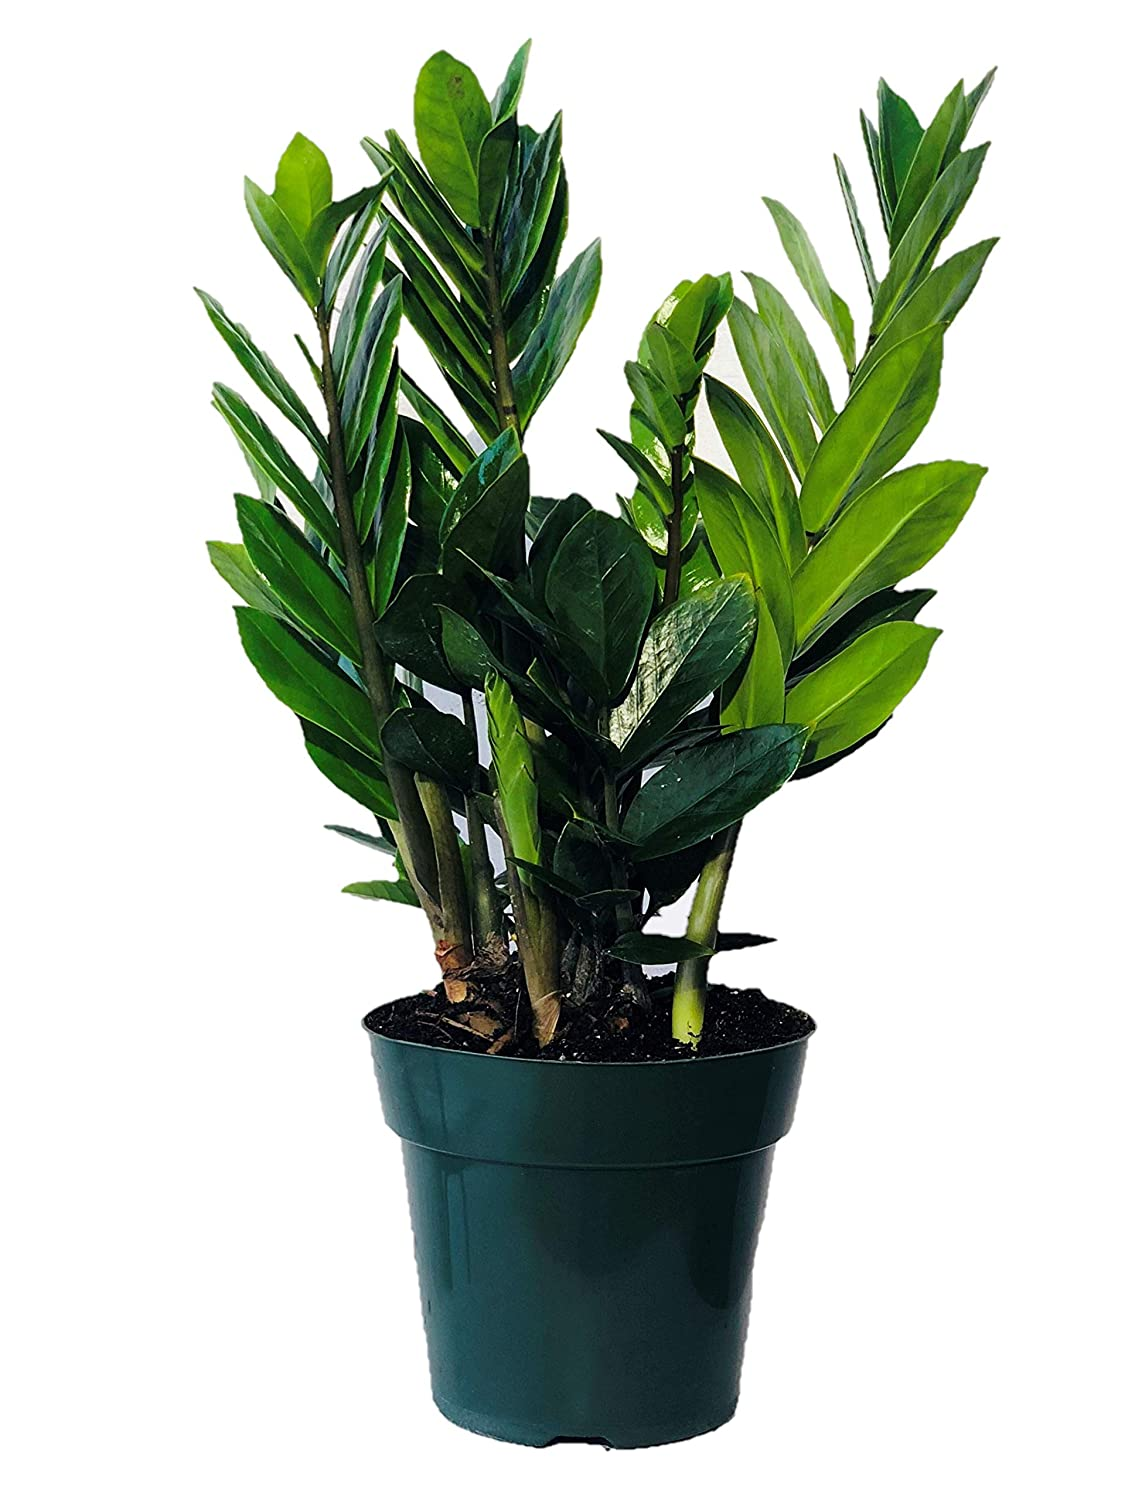 Acosta Farms - ZZ Plant (Zanzibar Gem) - Live Indoor House Plant - on order birds of paradise plant, zamiifolia house plant, spider house plant, fig house plant, houseplants plant, croton house plant, banana house plant, cast iron plant, rubber house plant, hydrangea house plant, peperomia house plant, fern house plant, zi zi plant, arrowhead house plant, umbrella house plant, avocado house plant, eternity plant, house plant identification succulent plant,